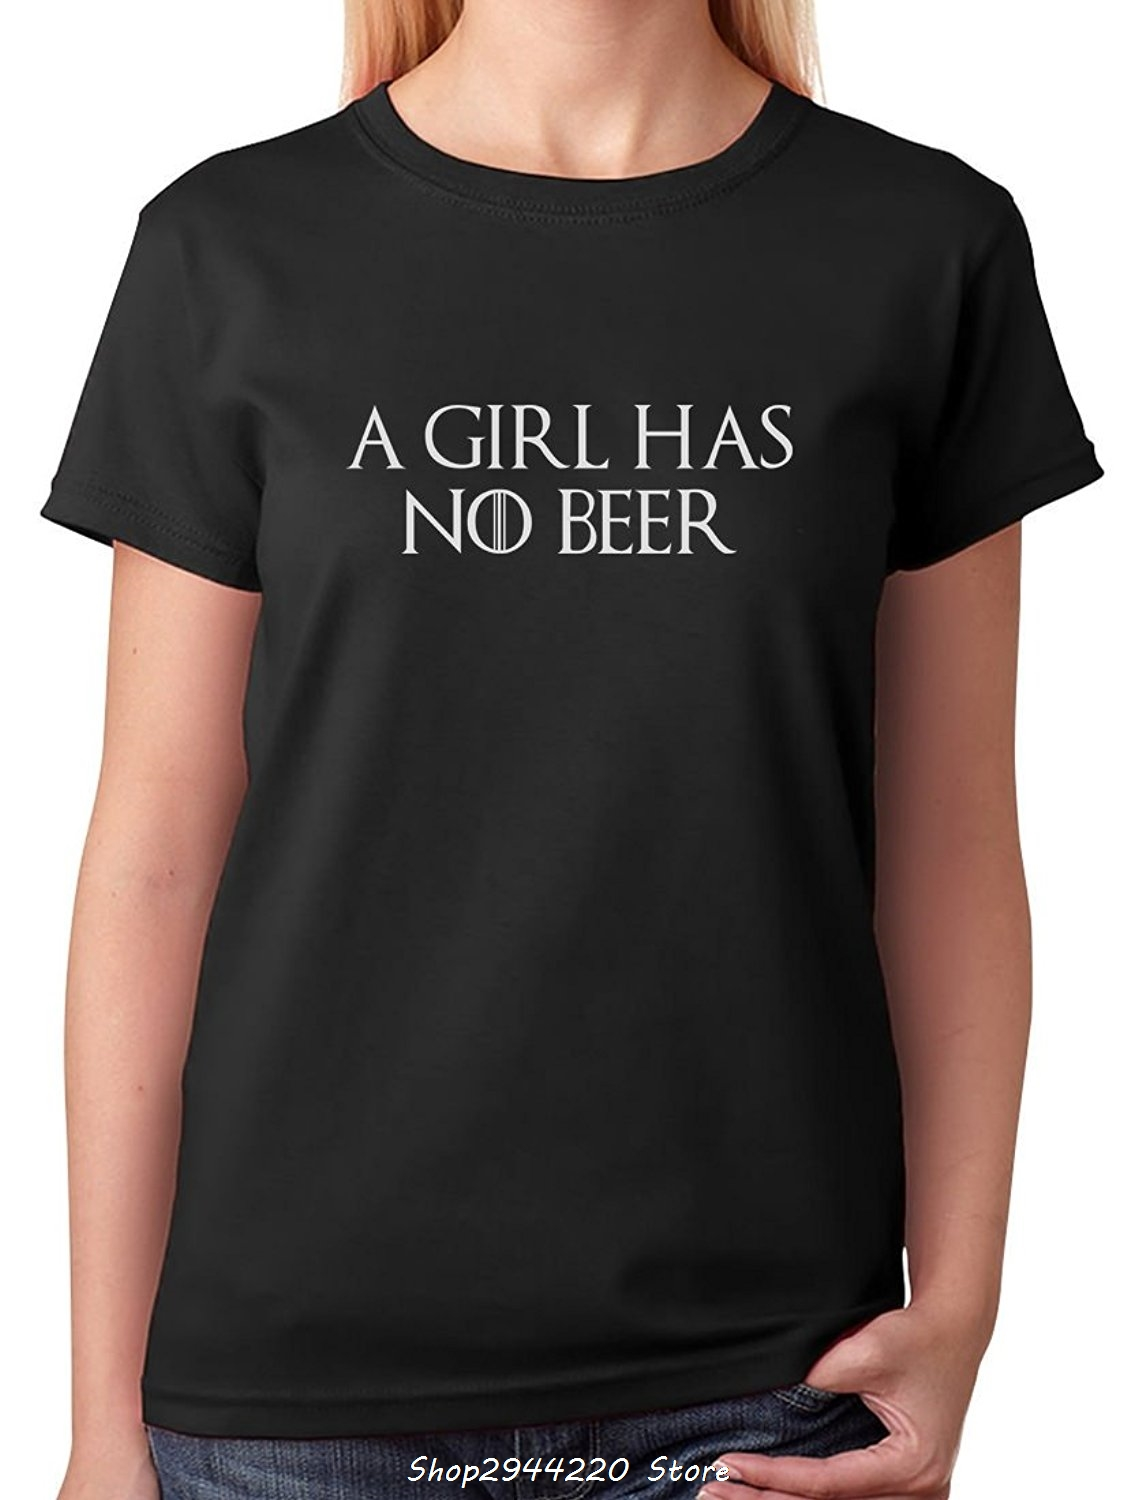 Design your own t-shirt female - 2017 Fashion Create Your Own T Shirt Design Women S Short A Girl Has No Beer St